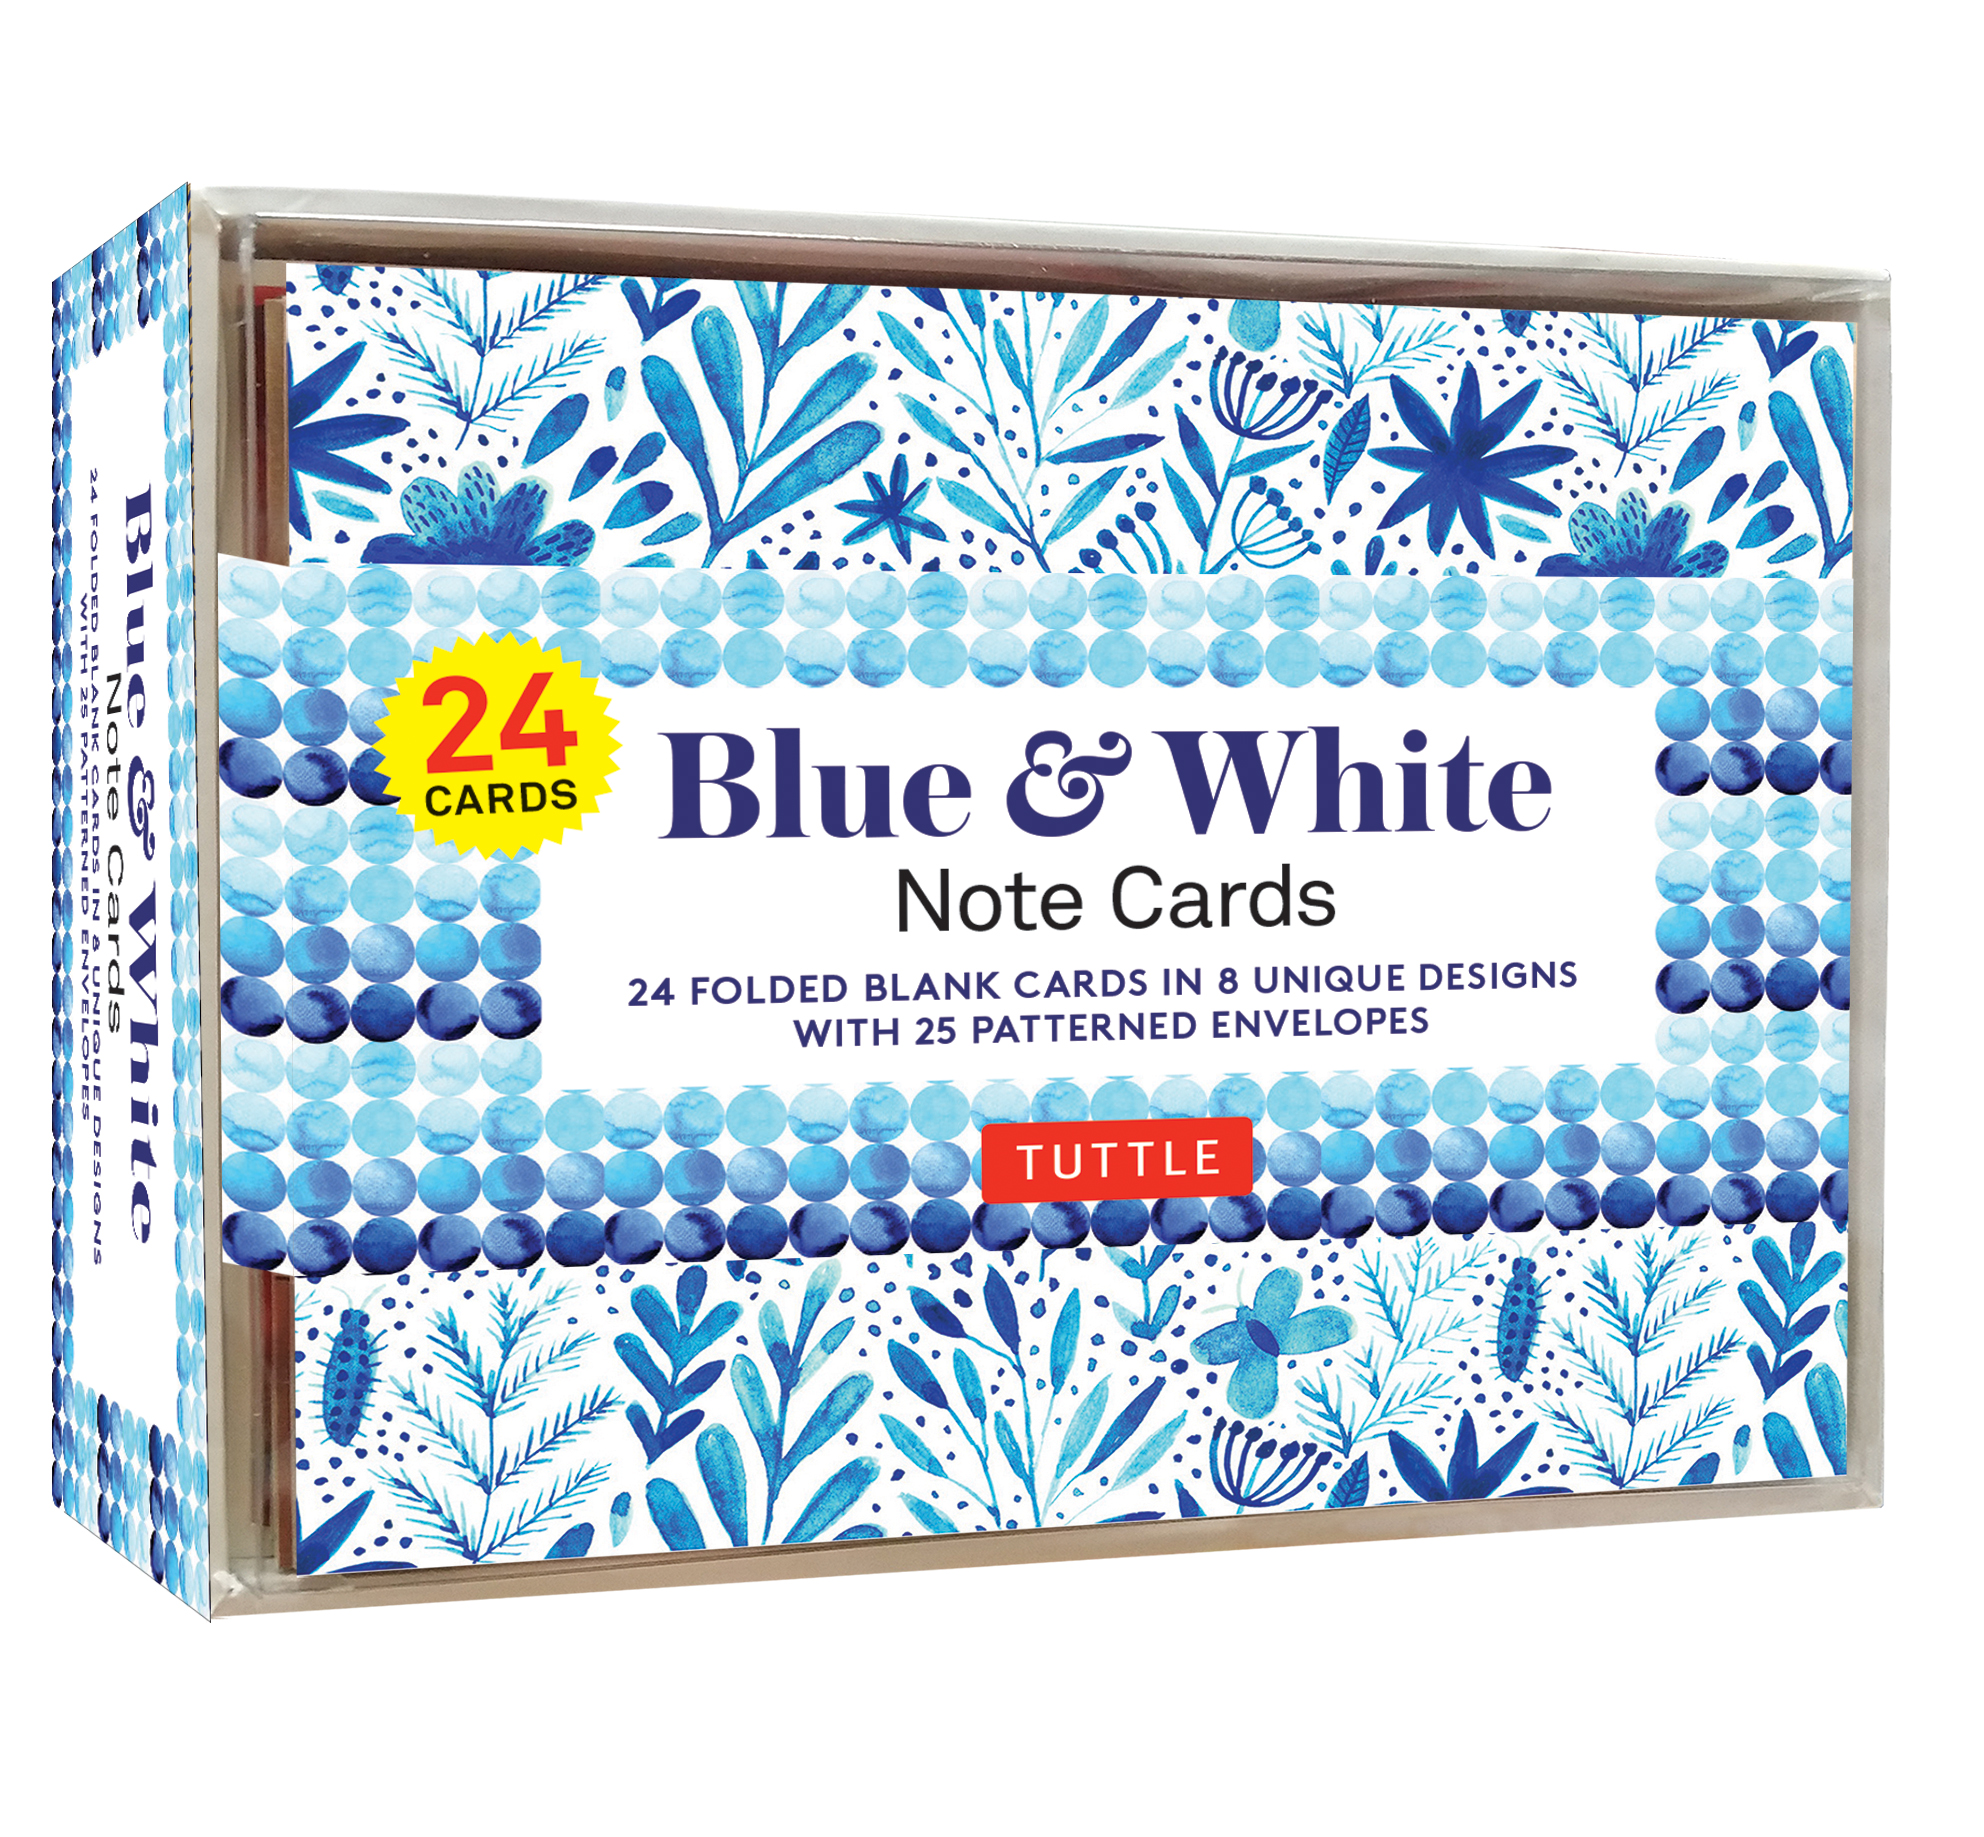 Blue & White - 24 Note Cards